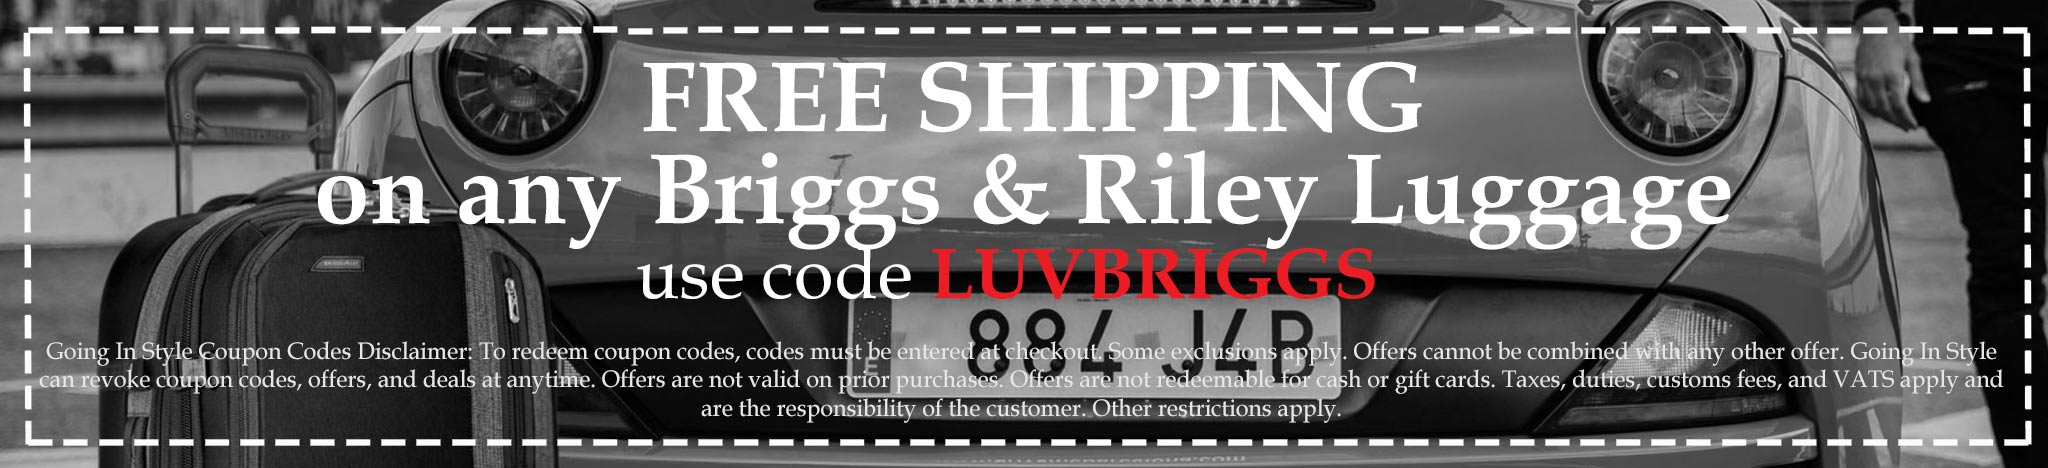 Coupon free shipping on briggs and riley luggage